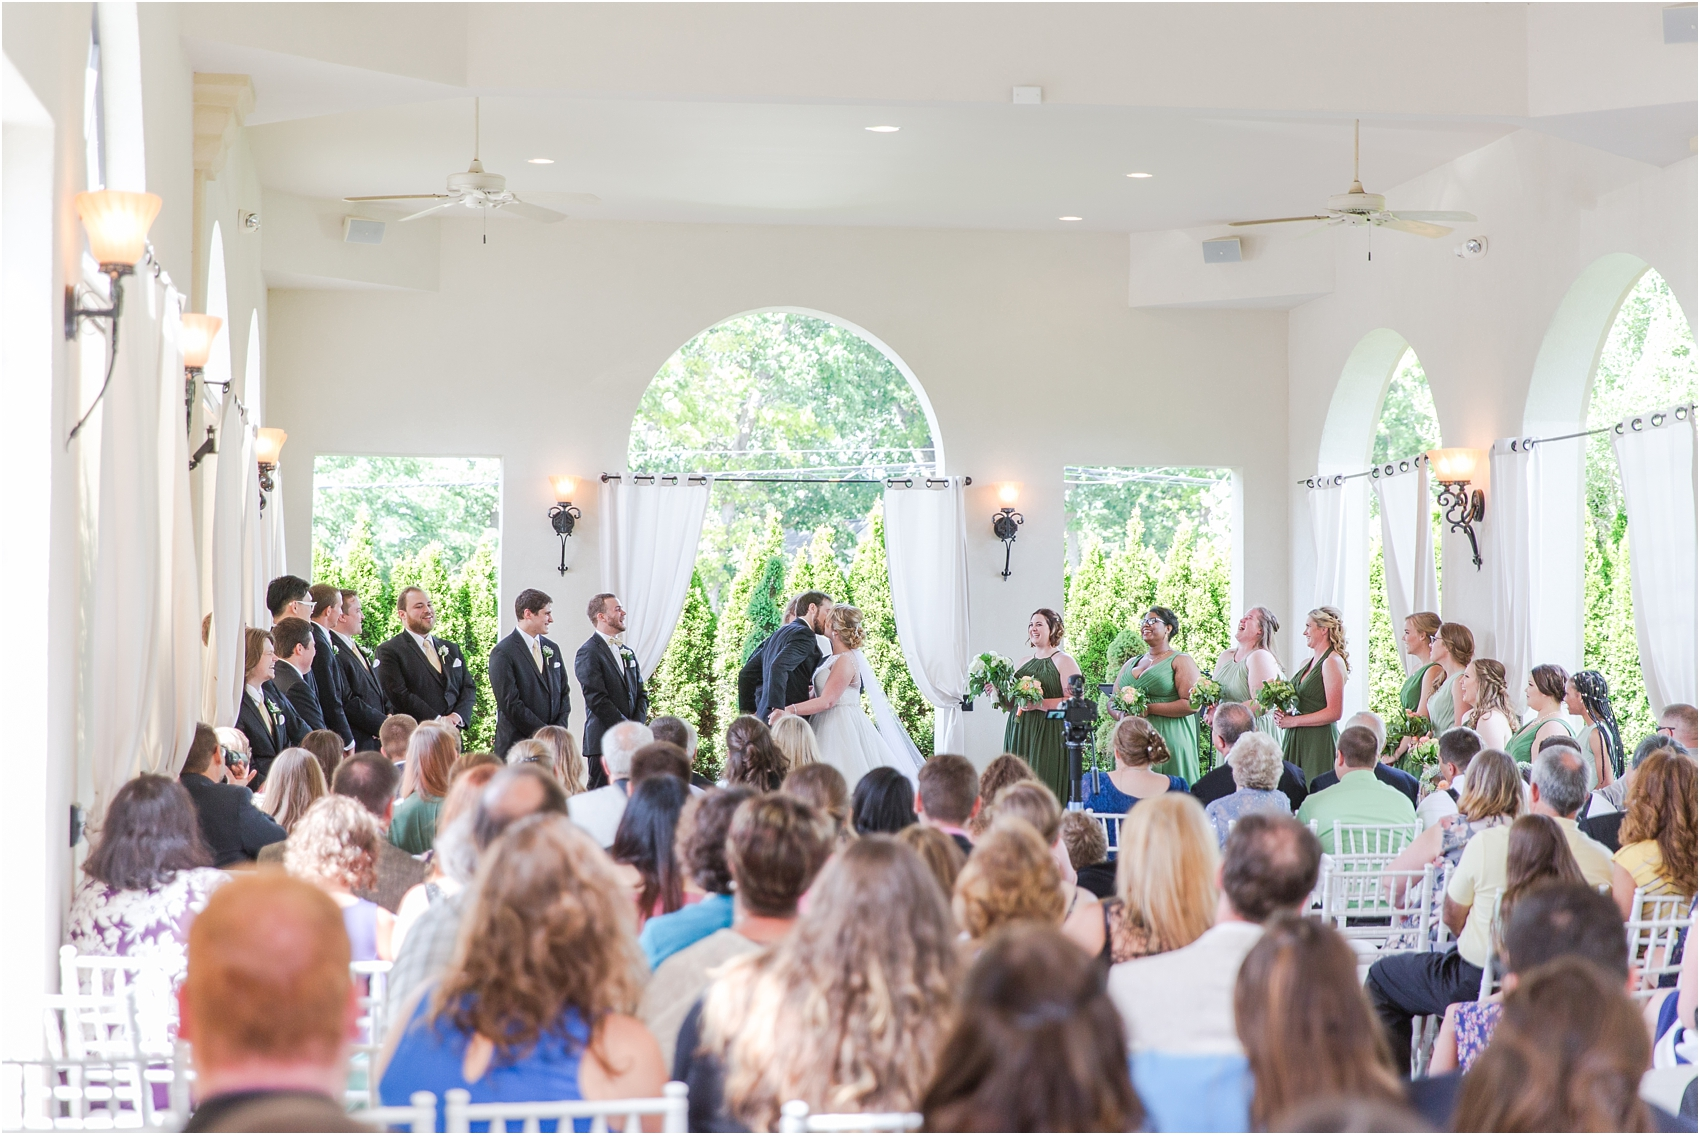 lord-of-the-rings-inspired-wedding-photos-at-crystal-gardens-in-howell-mi-by-courtney-carolyn-photography_0050.jpg